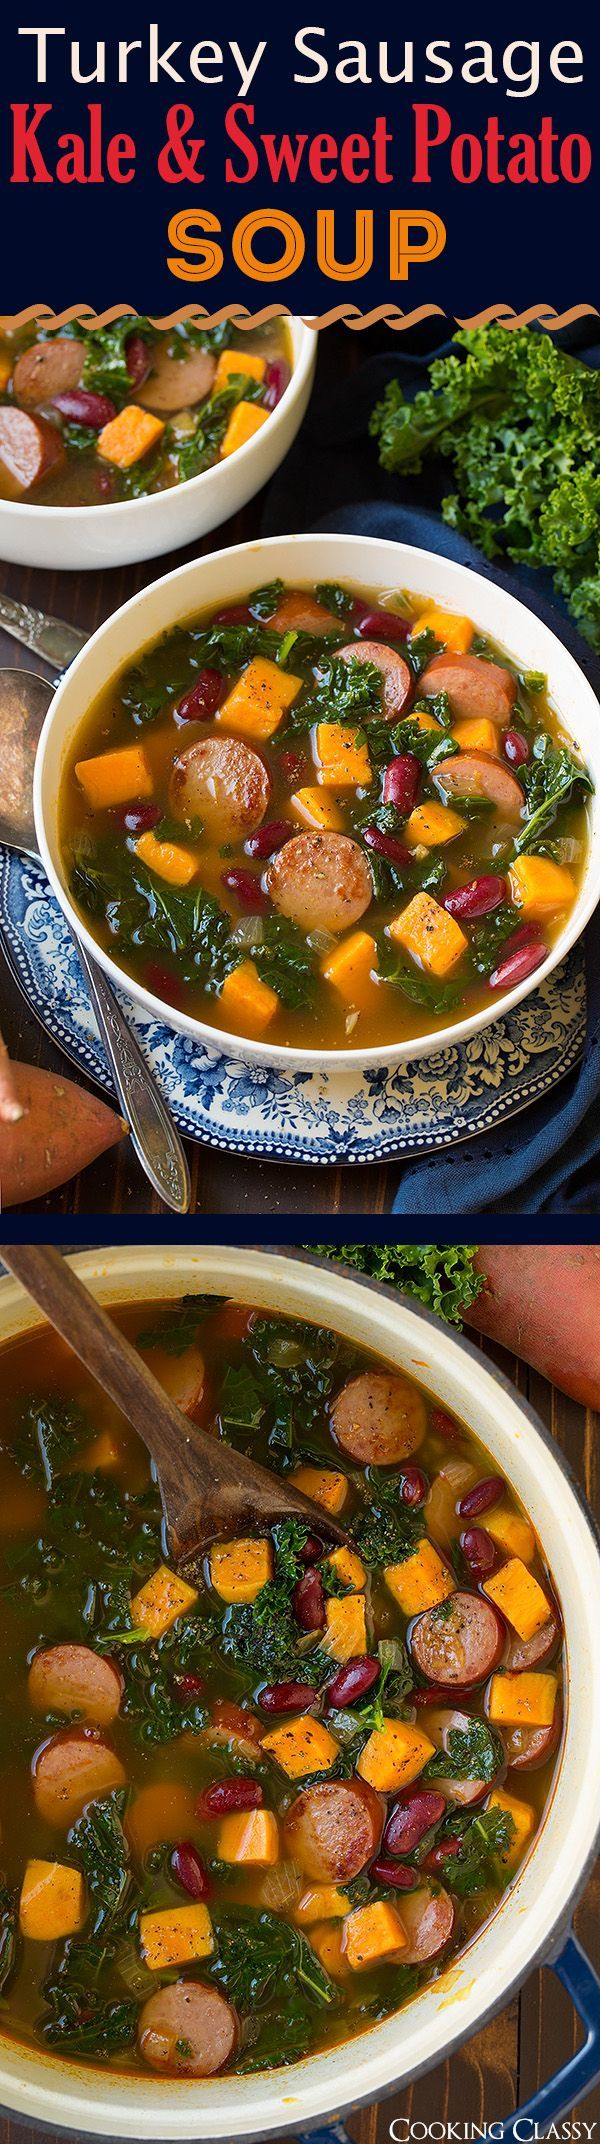 Turkey Sausage, Kale and Sweet Potato Soup - Easy and delicious fall soup! Love this combination of flavors! (May sub spinach/spiced turkey sausage then leave out chili powder)